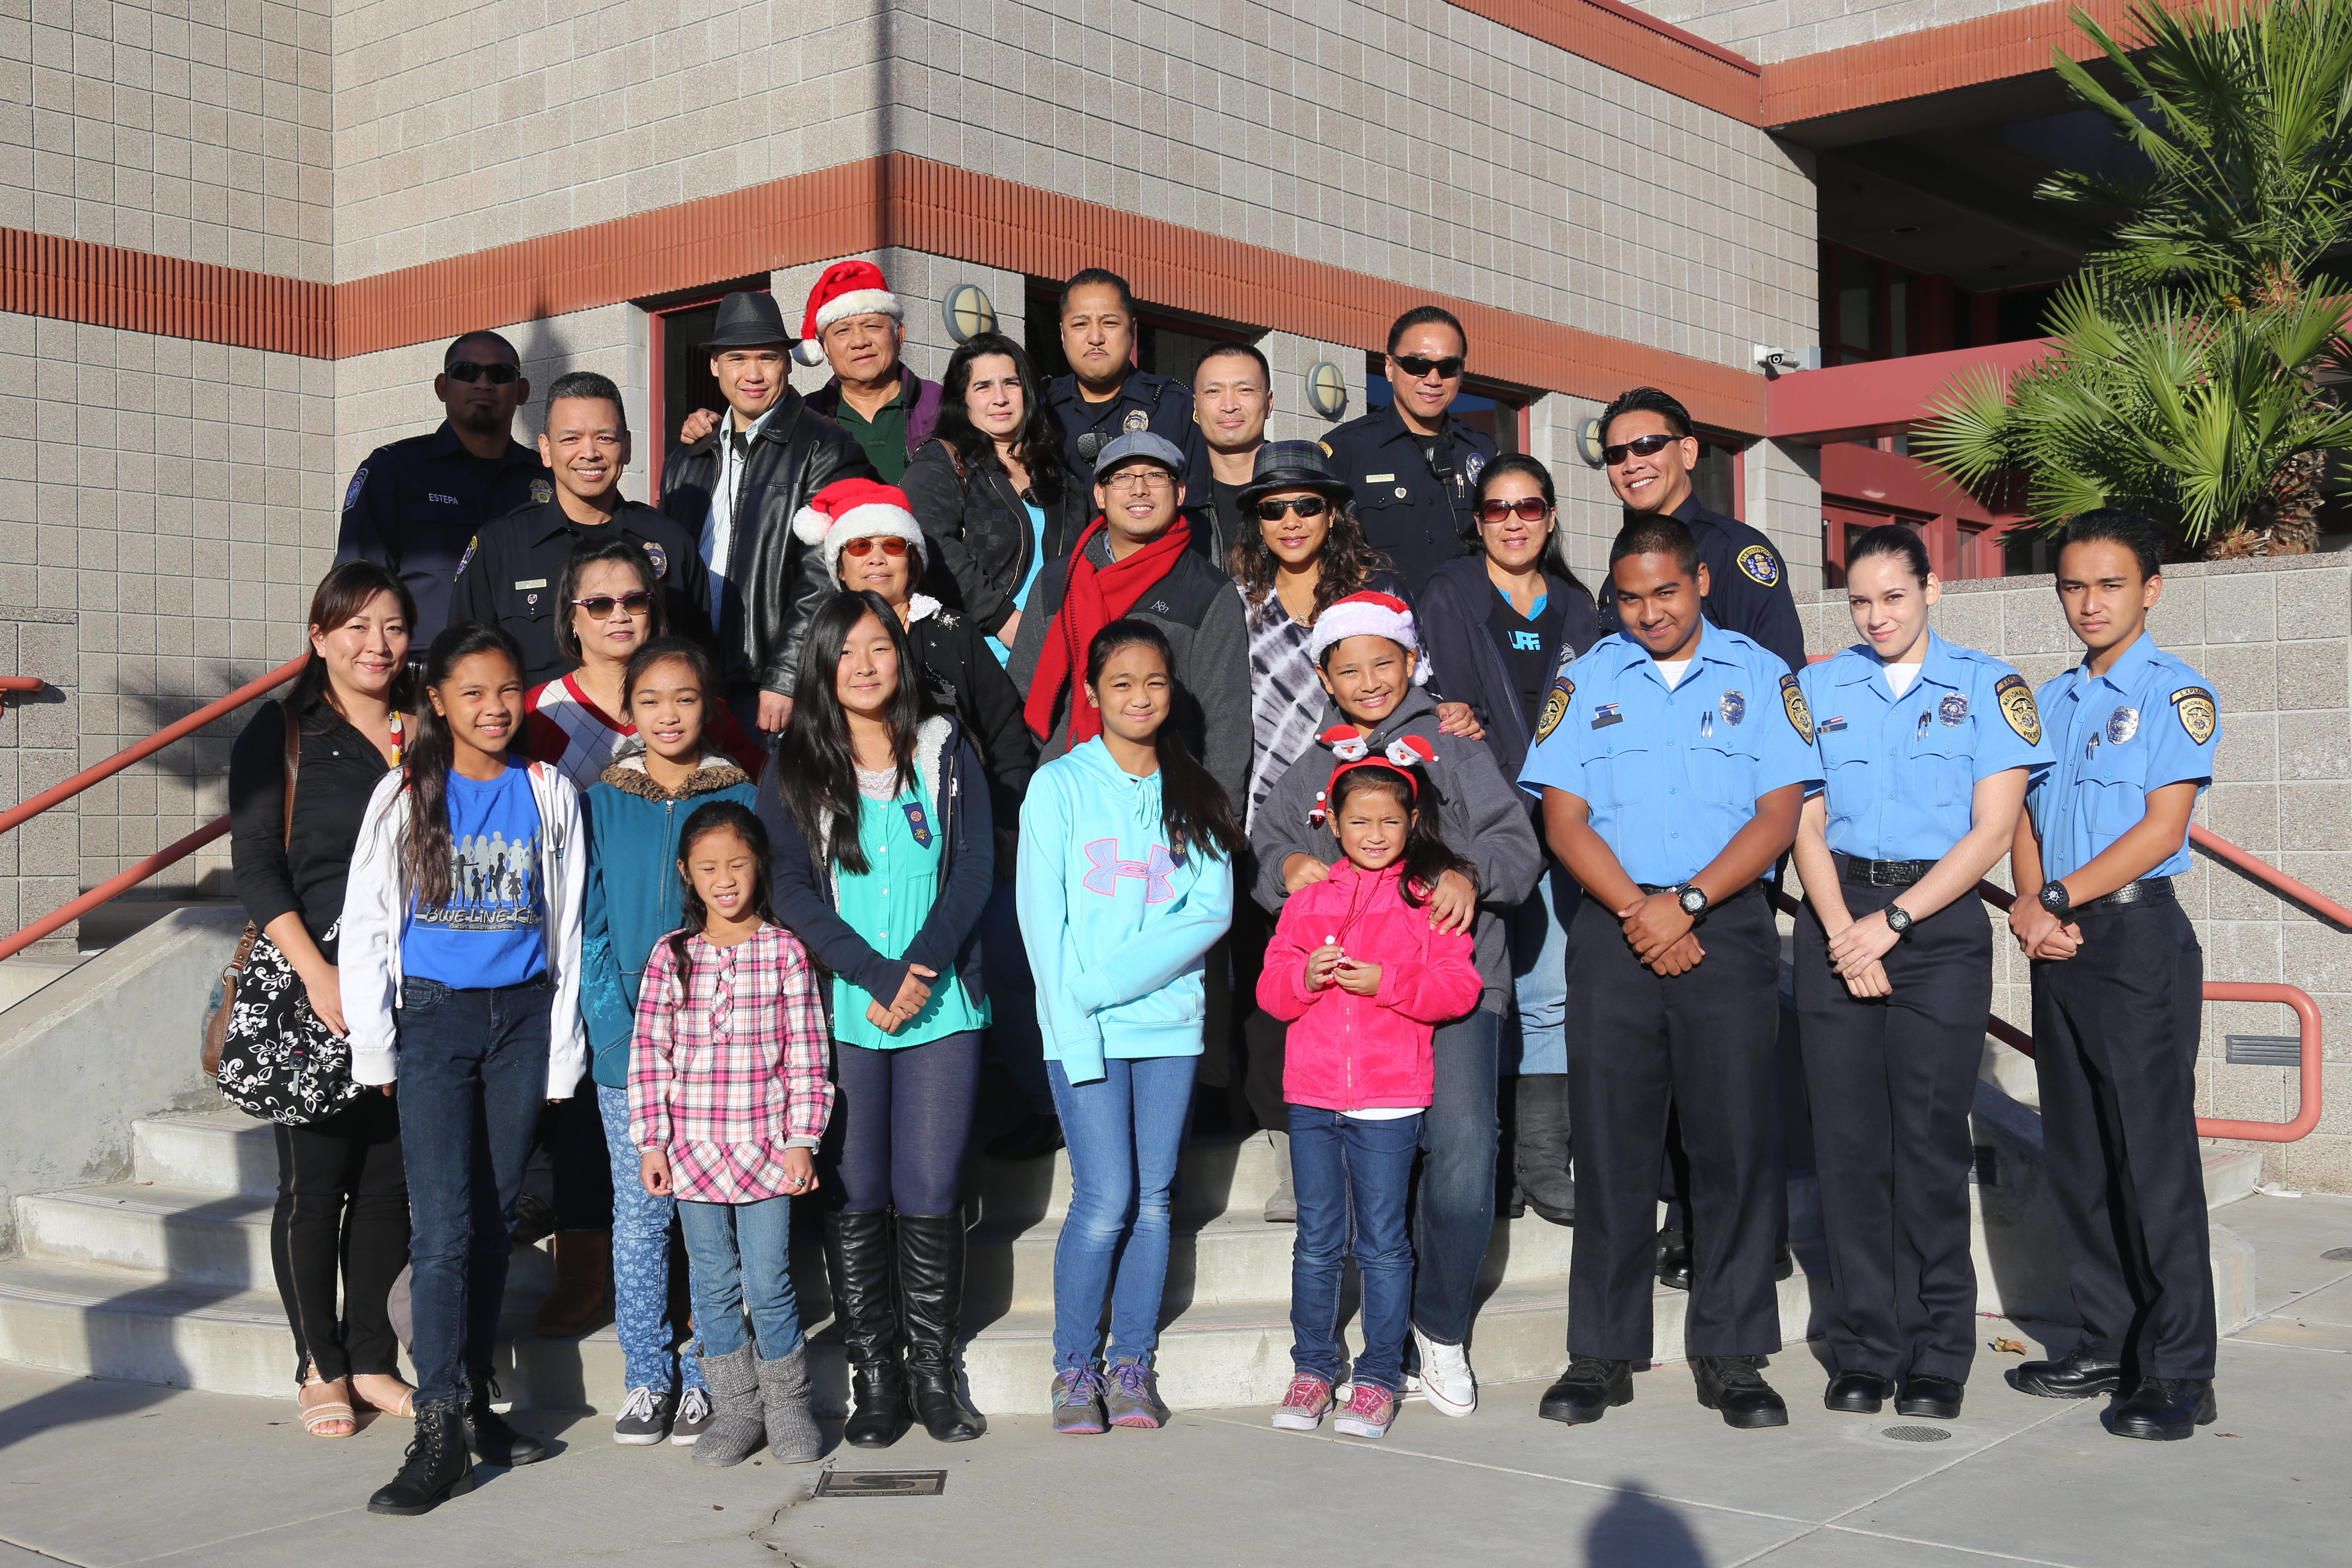 4th annual Helping Families food and gift drive